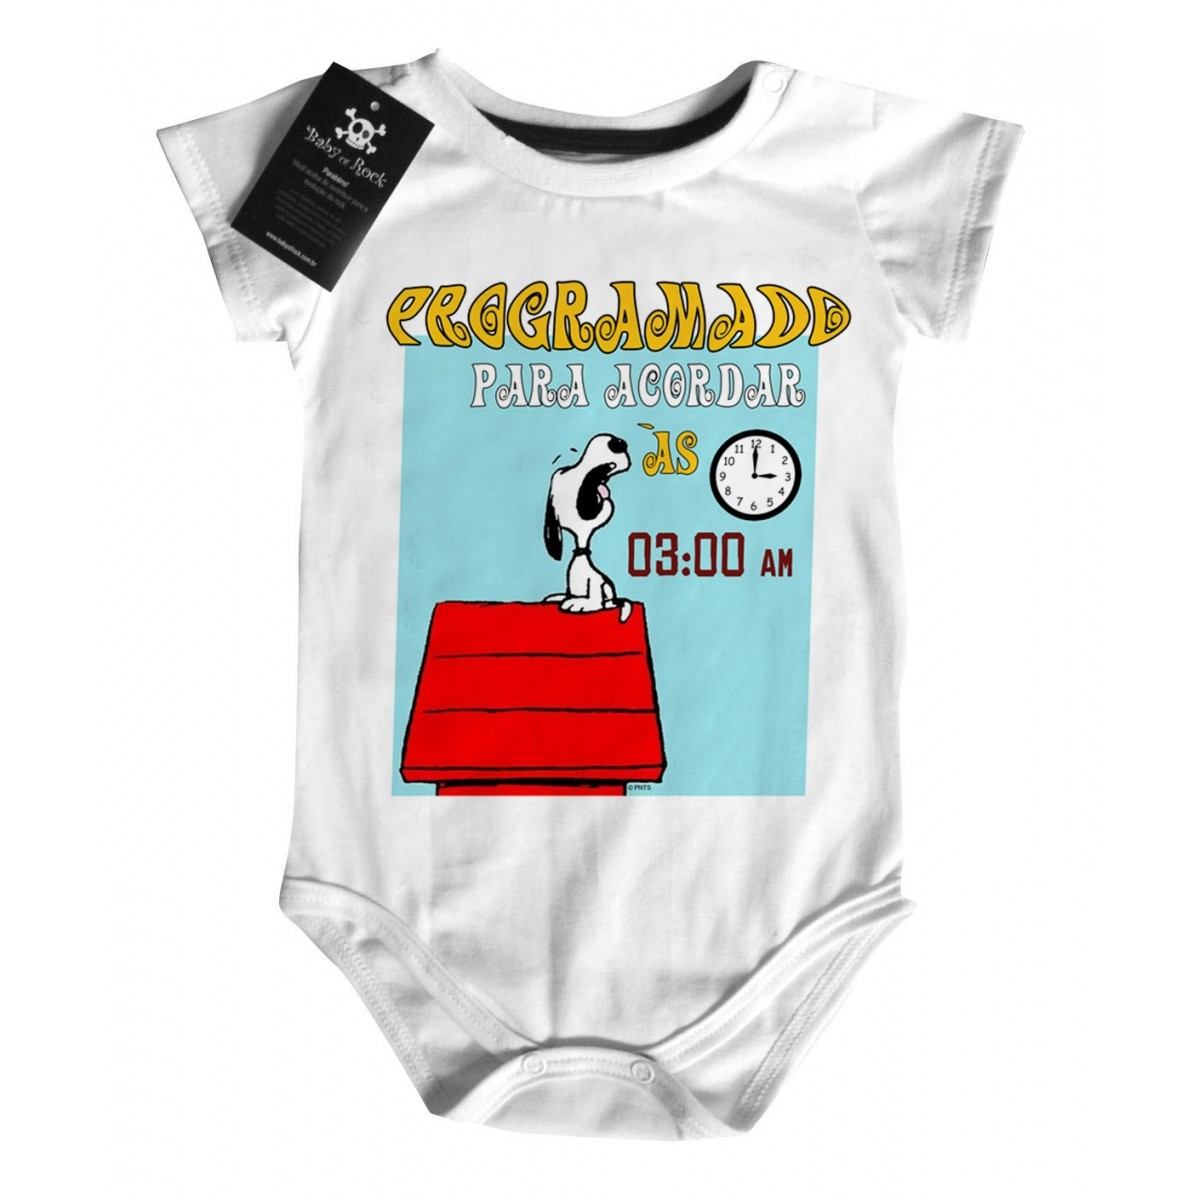 Body Baby Geek Nerd - Programado para Acordar às 3 am- White  - Baby Monster S/A